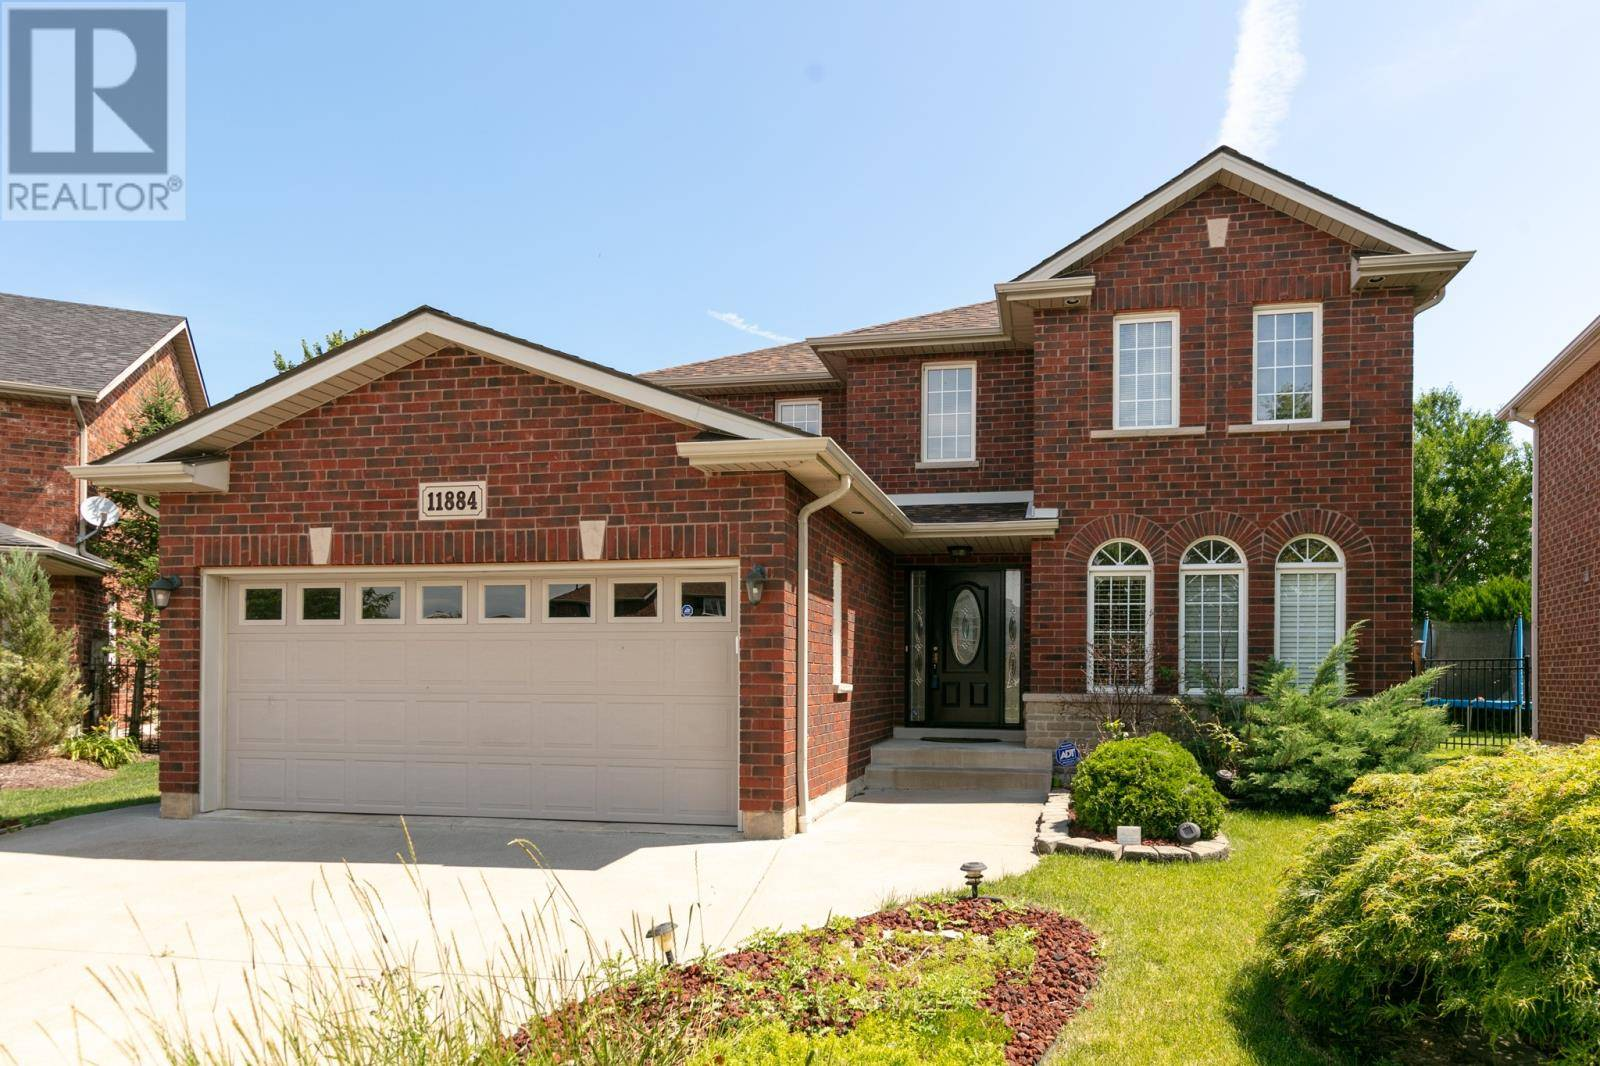 House for sale at 11884 Cobblestone  Windsor Ontario - MLS: 19025715